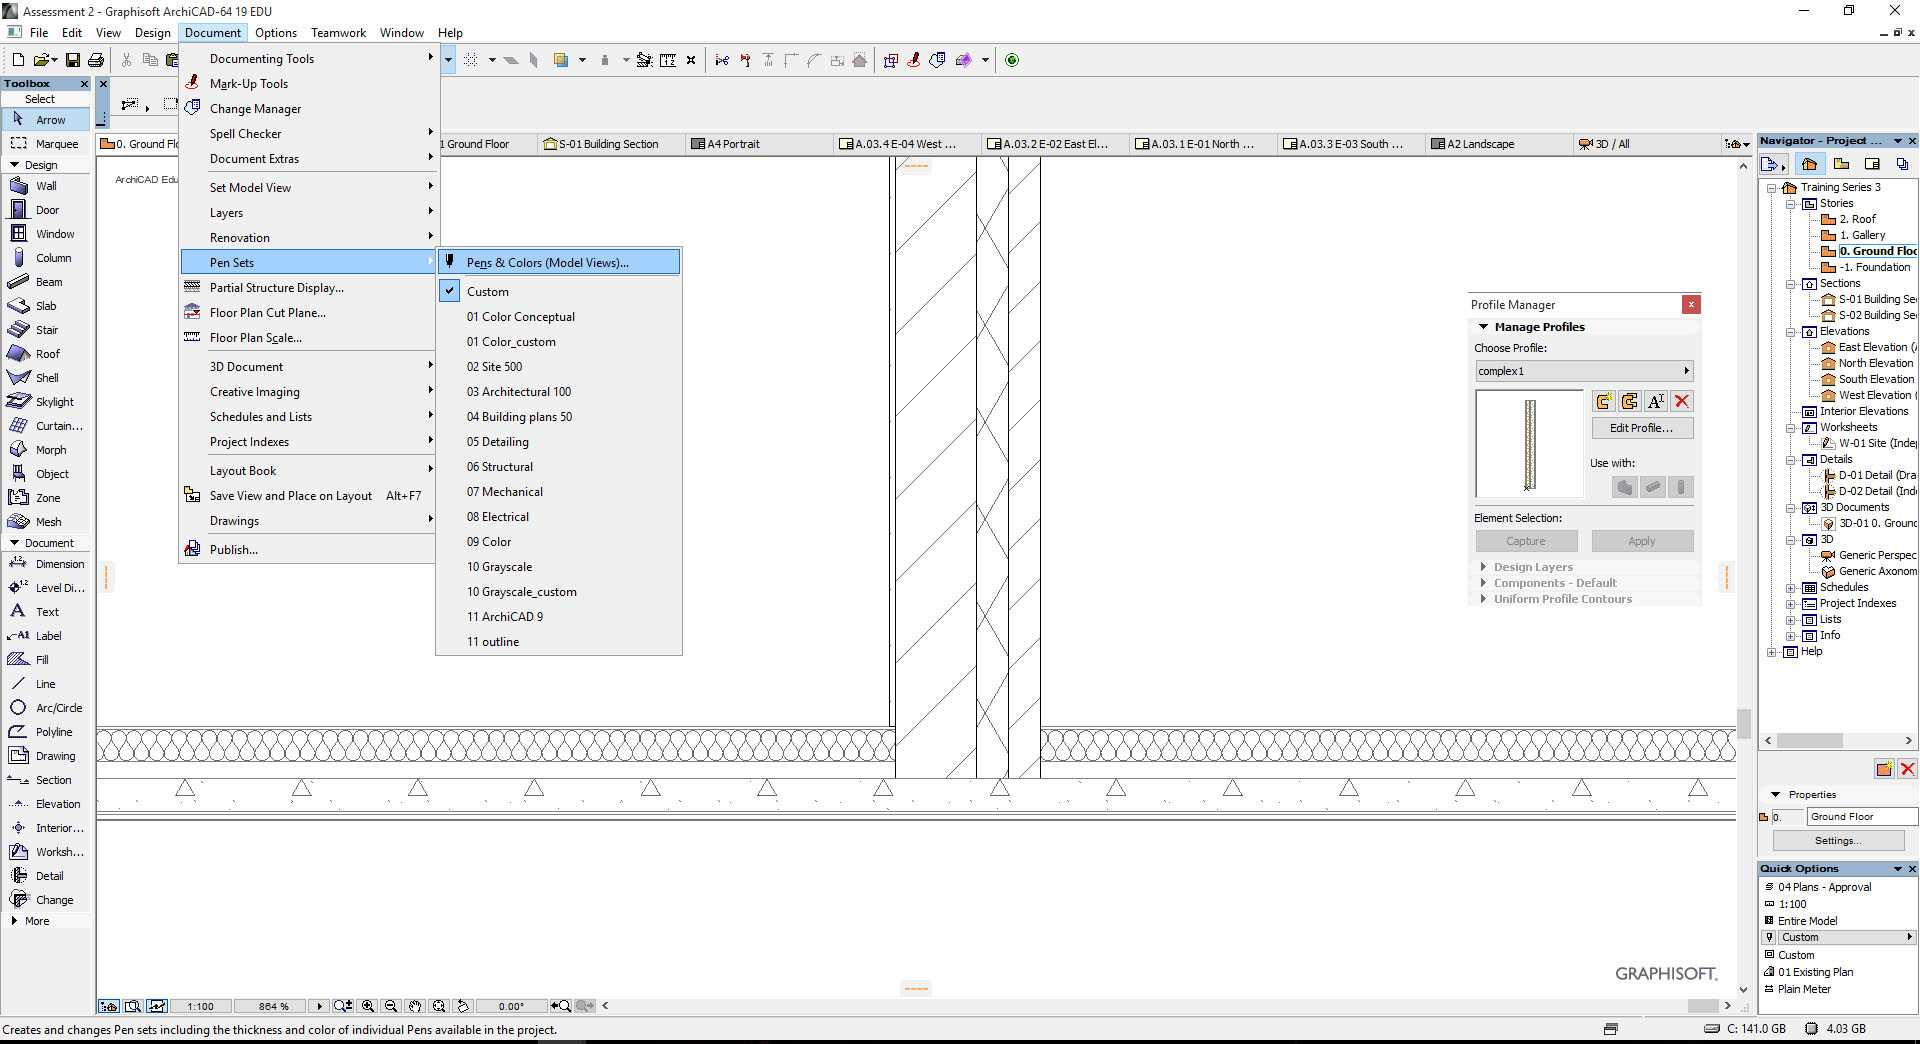 Custom Name Tracing Worksheets Along with Boyangchew – Bim4design